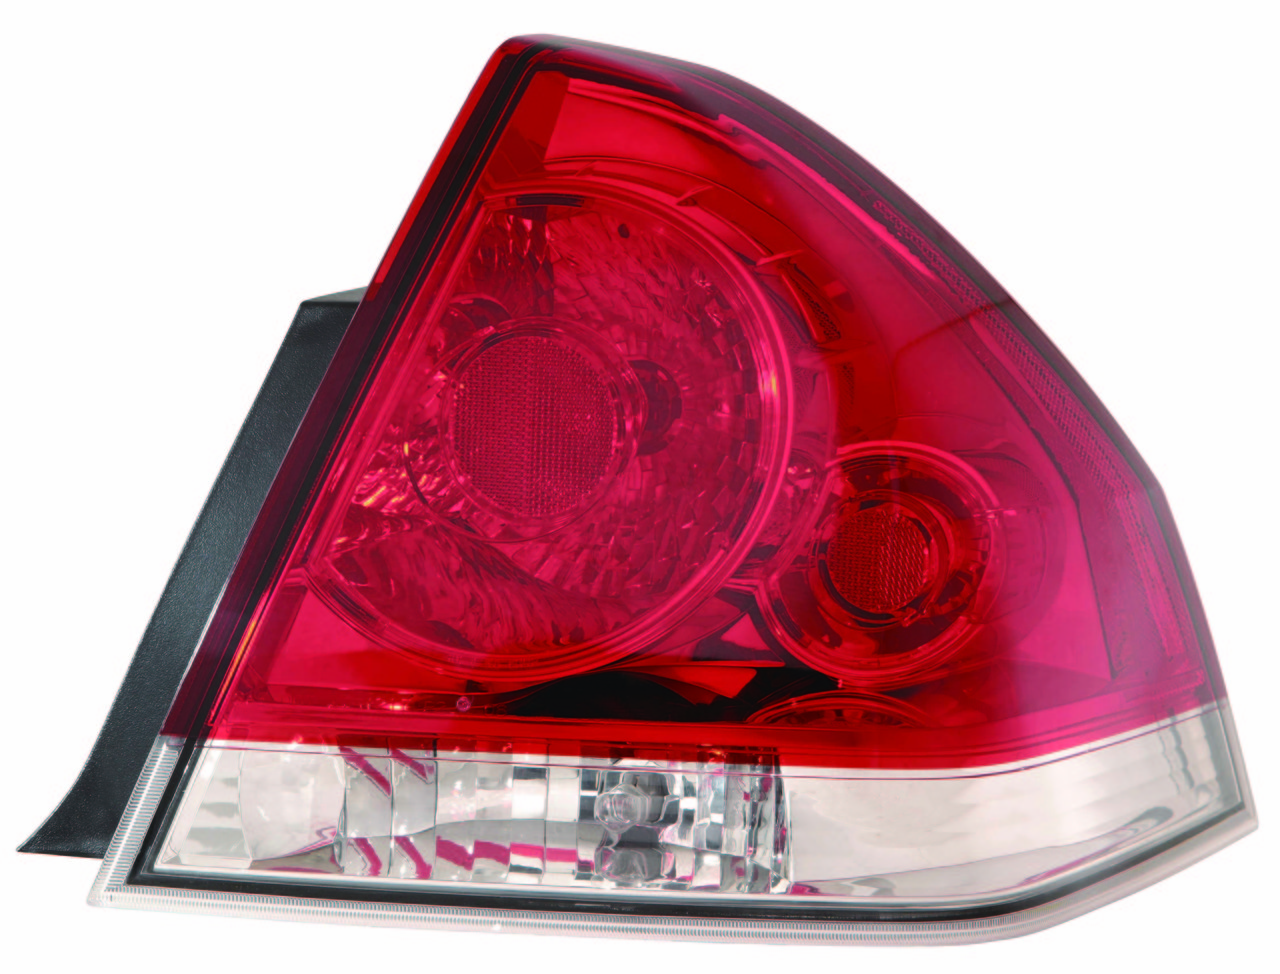 Chevrolet Impala 2010 2011 2012 2013 2014 tail light right passenger